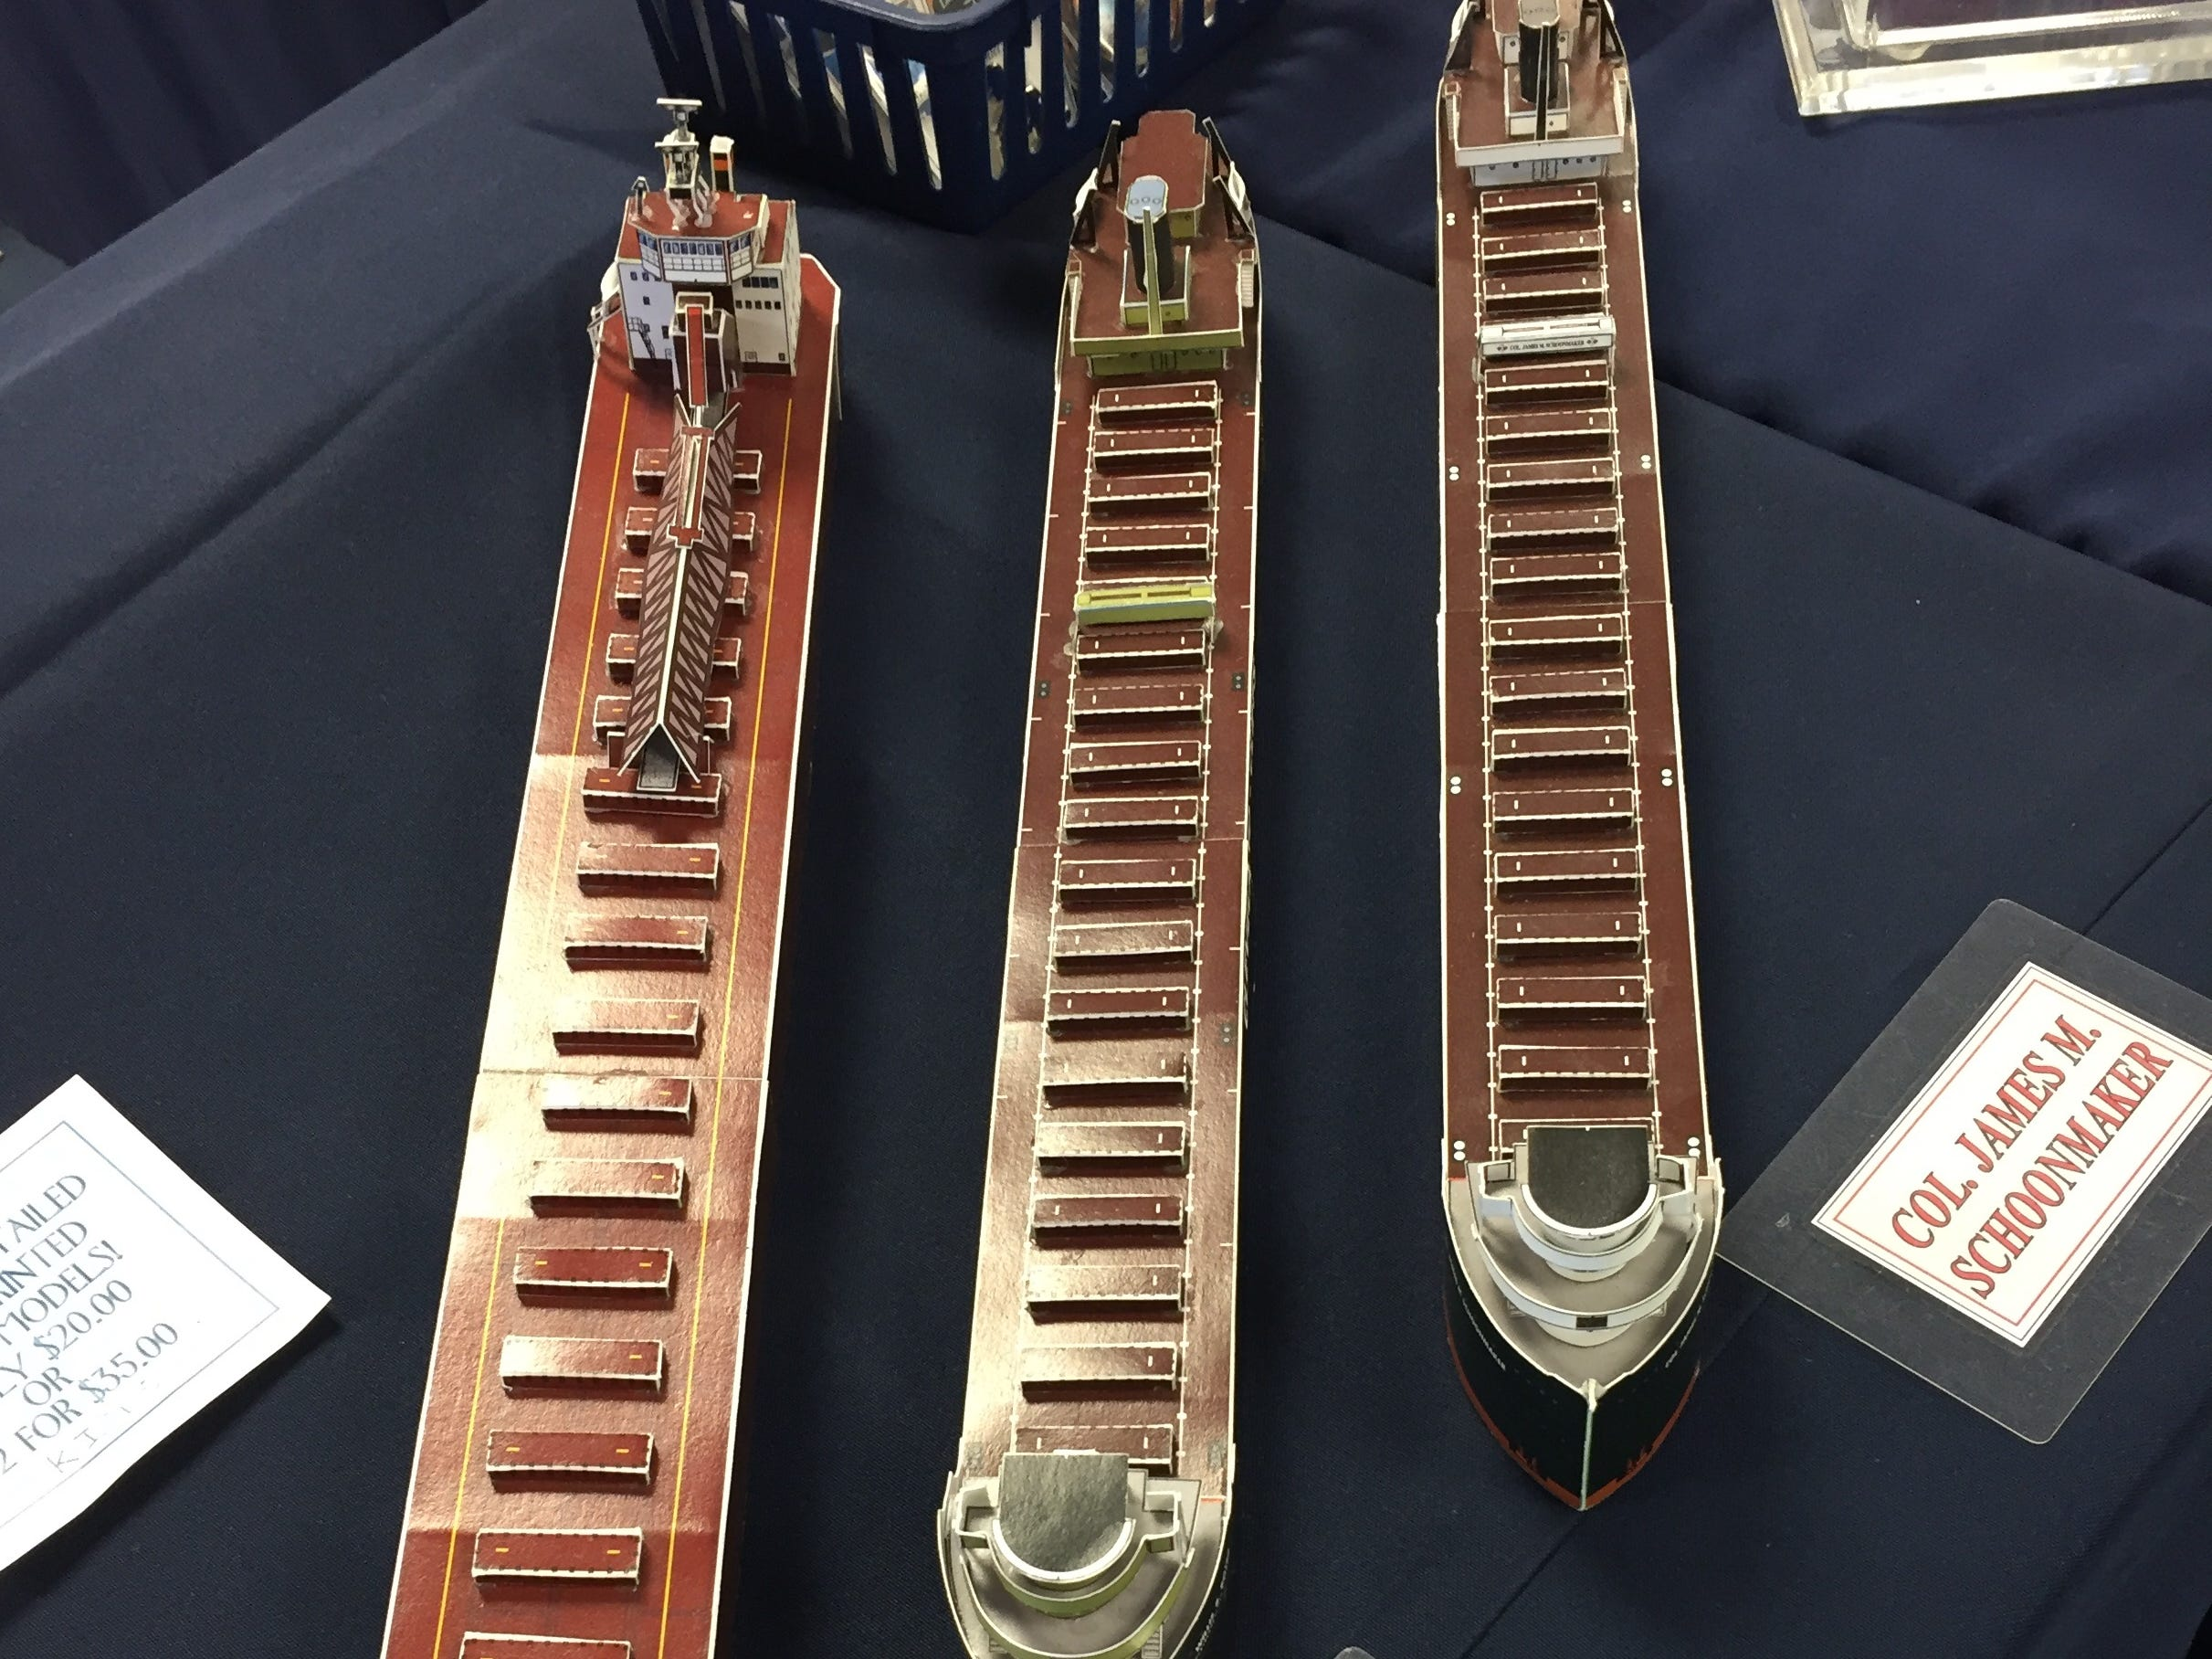 Bob May was selling paper models of Great Lakes freighters at the Boats and Books sale on Saturday, Nov. 10, 2018 at the Great Lakes Maritime Center in Port Huron.